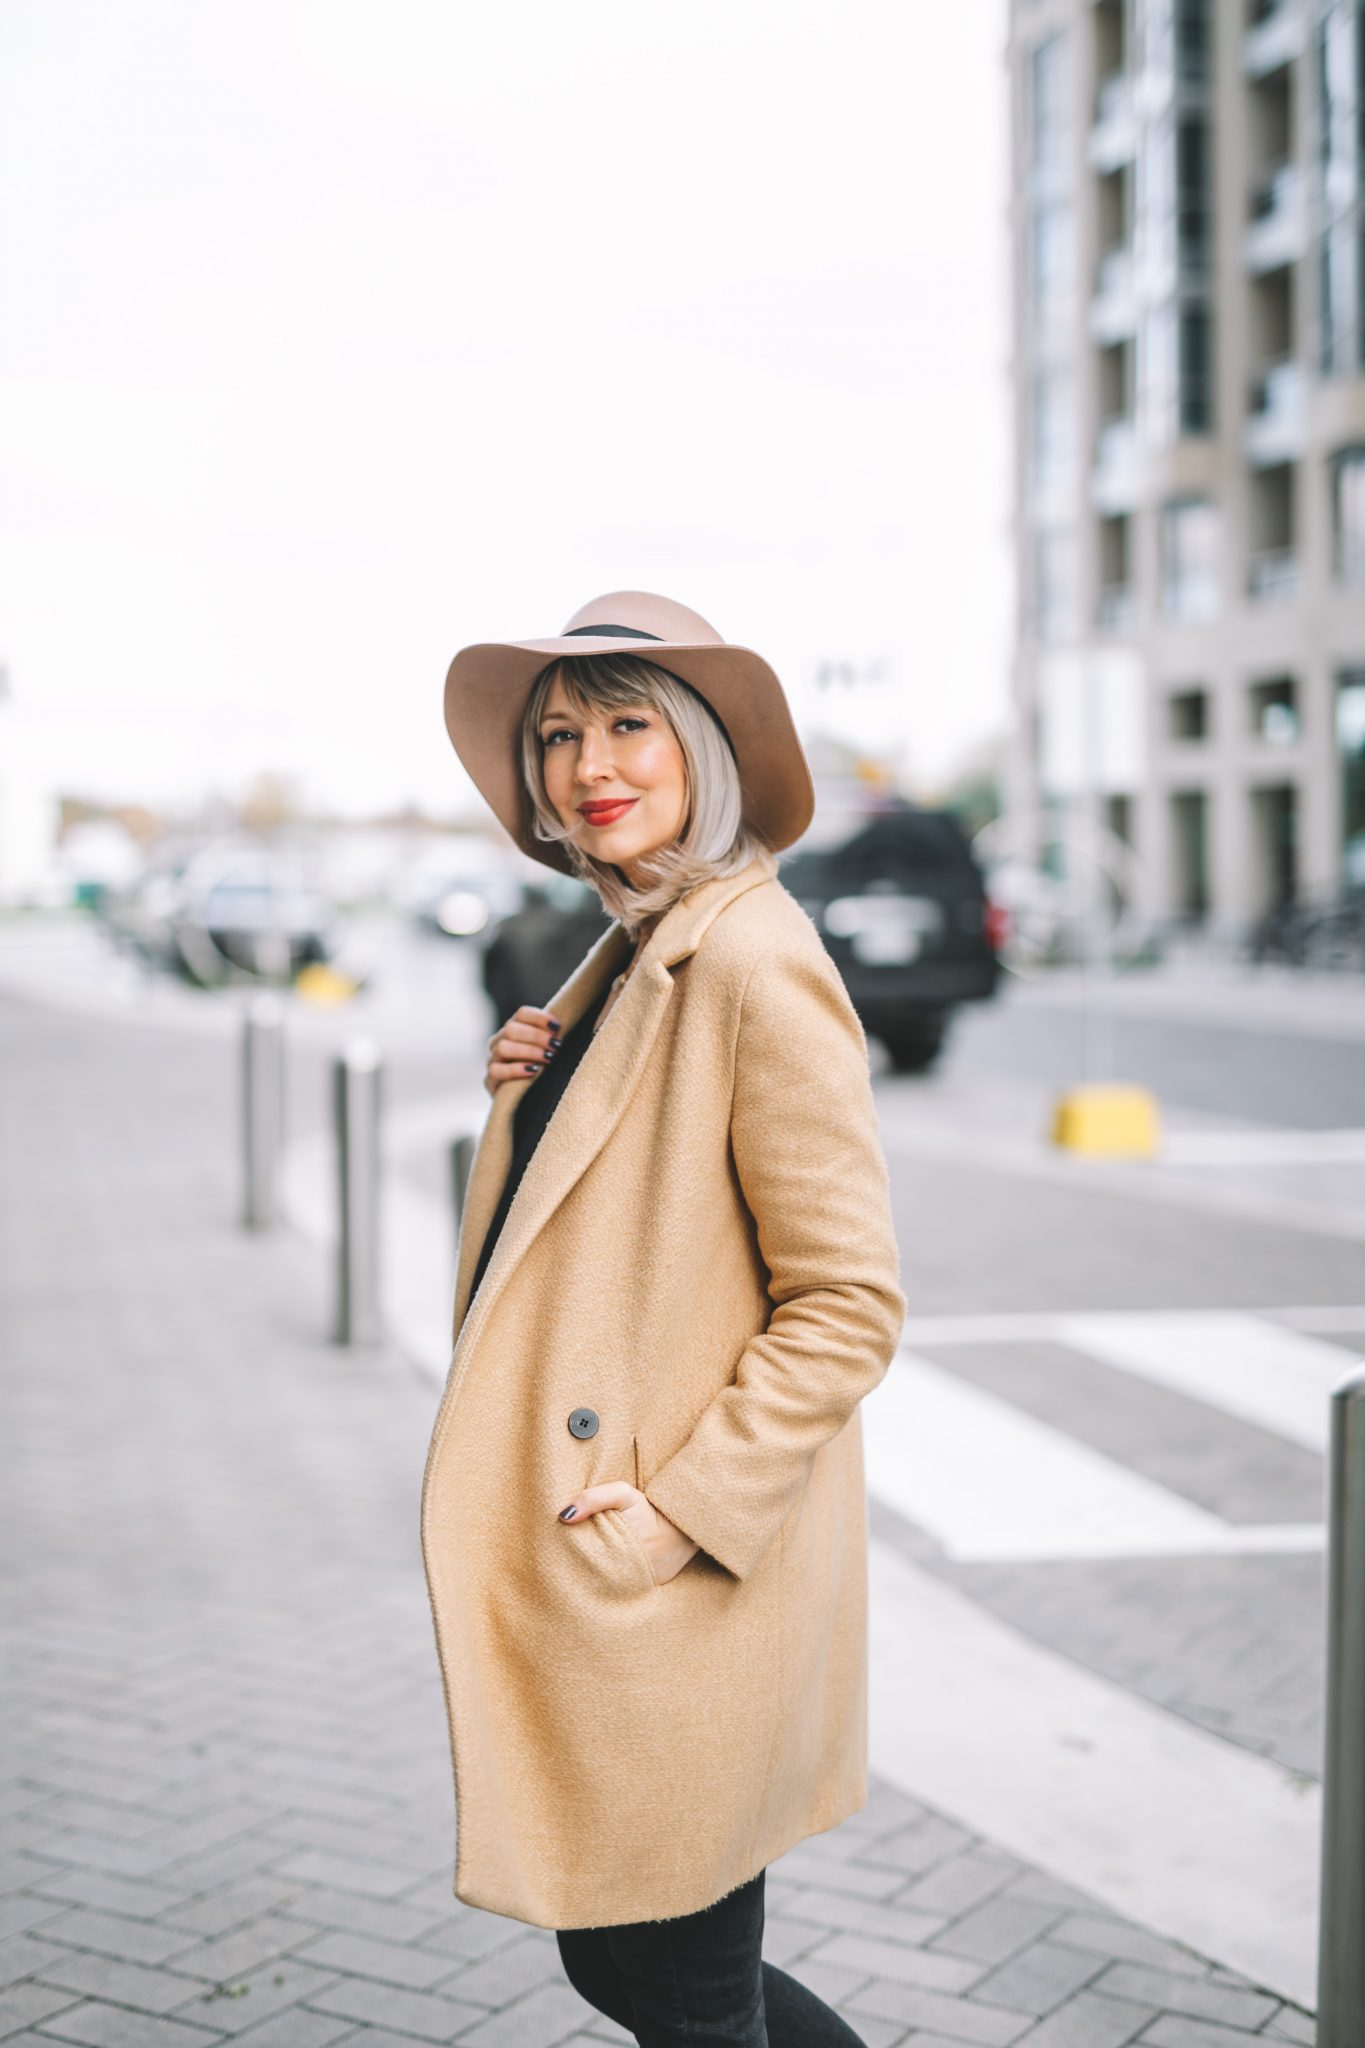 Beige coat and hat street style (9 of 10)